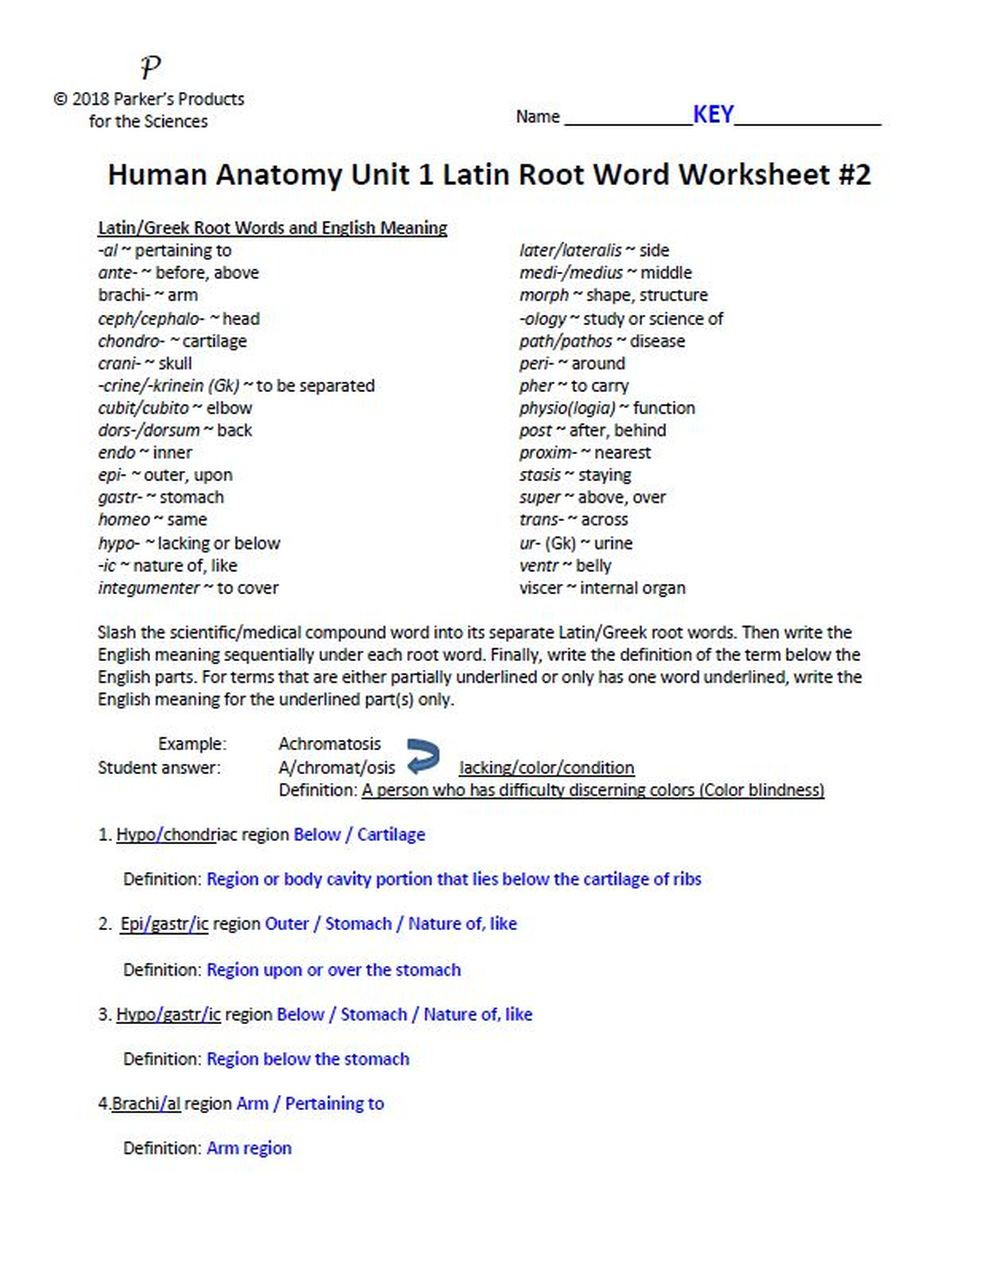 Root Words Worksheets 4th Grade Latin Root Word Worksheet Set for Unit E Human Anatomy & Physiology